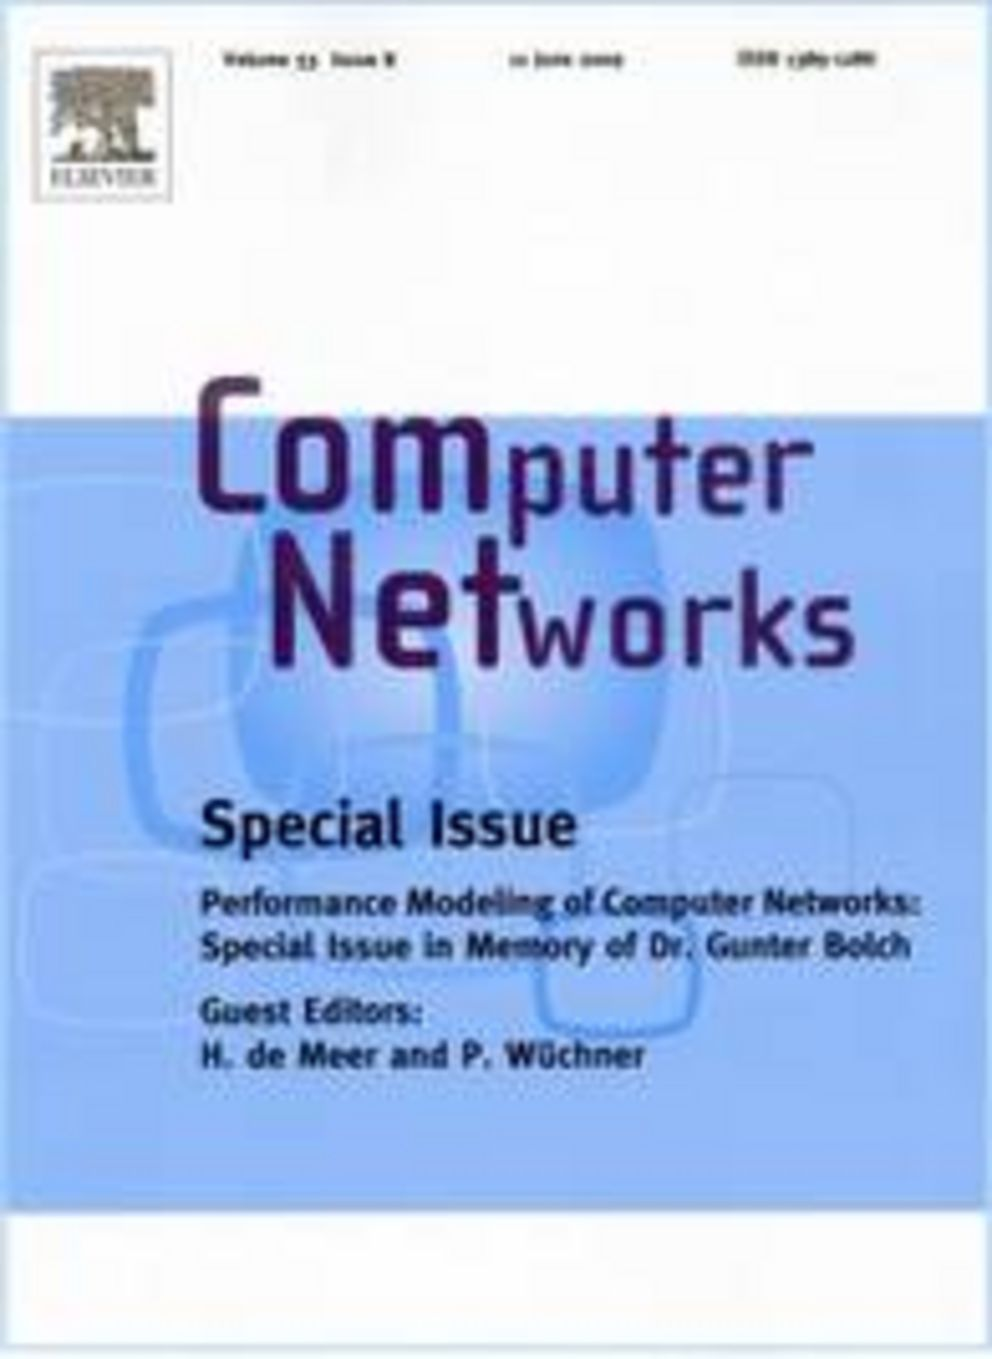 Computer Networks, Special Issue: Performance Modeling of Computer Networks